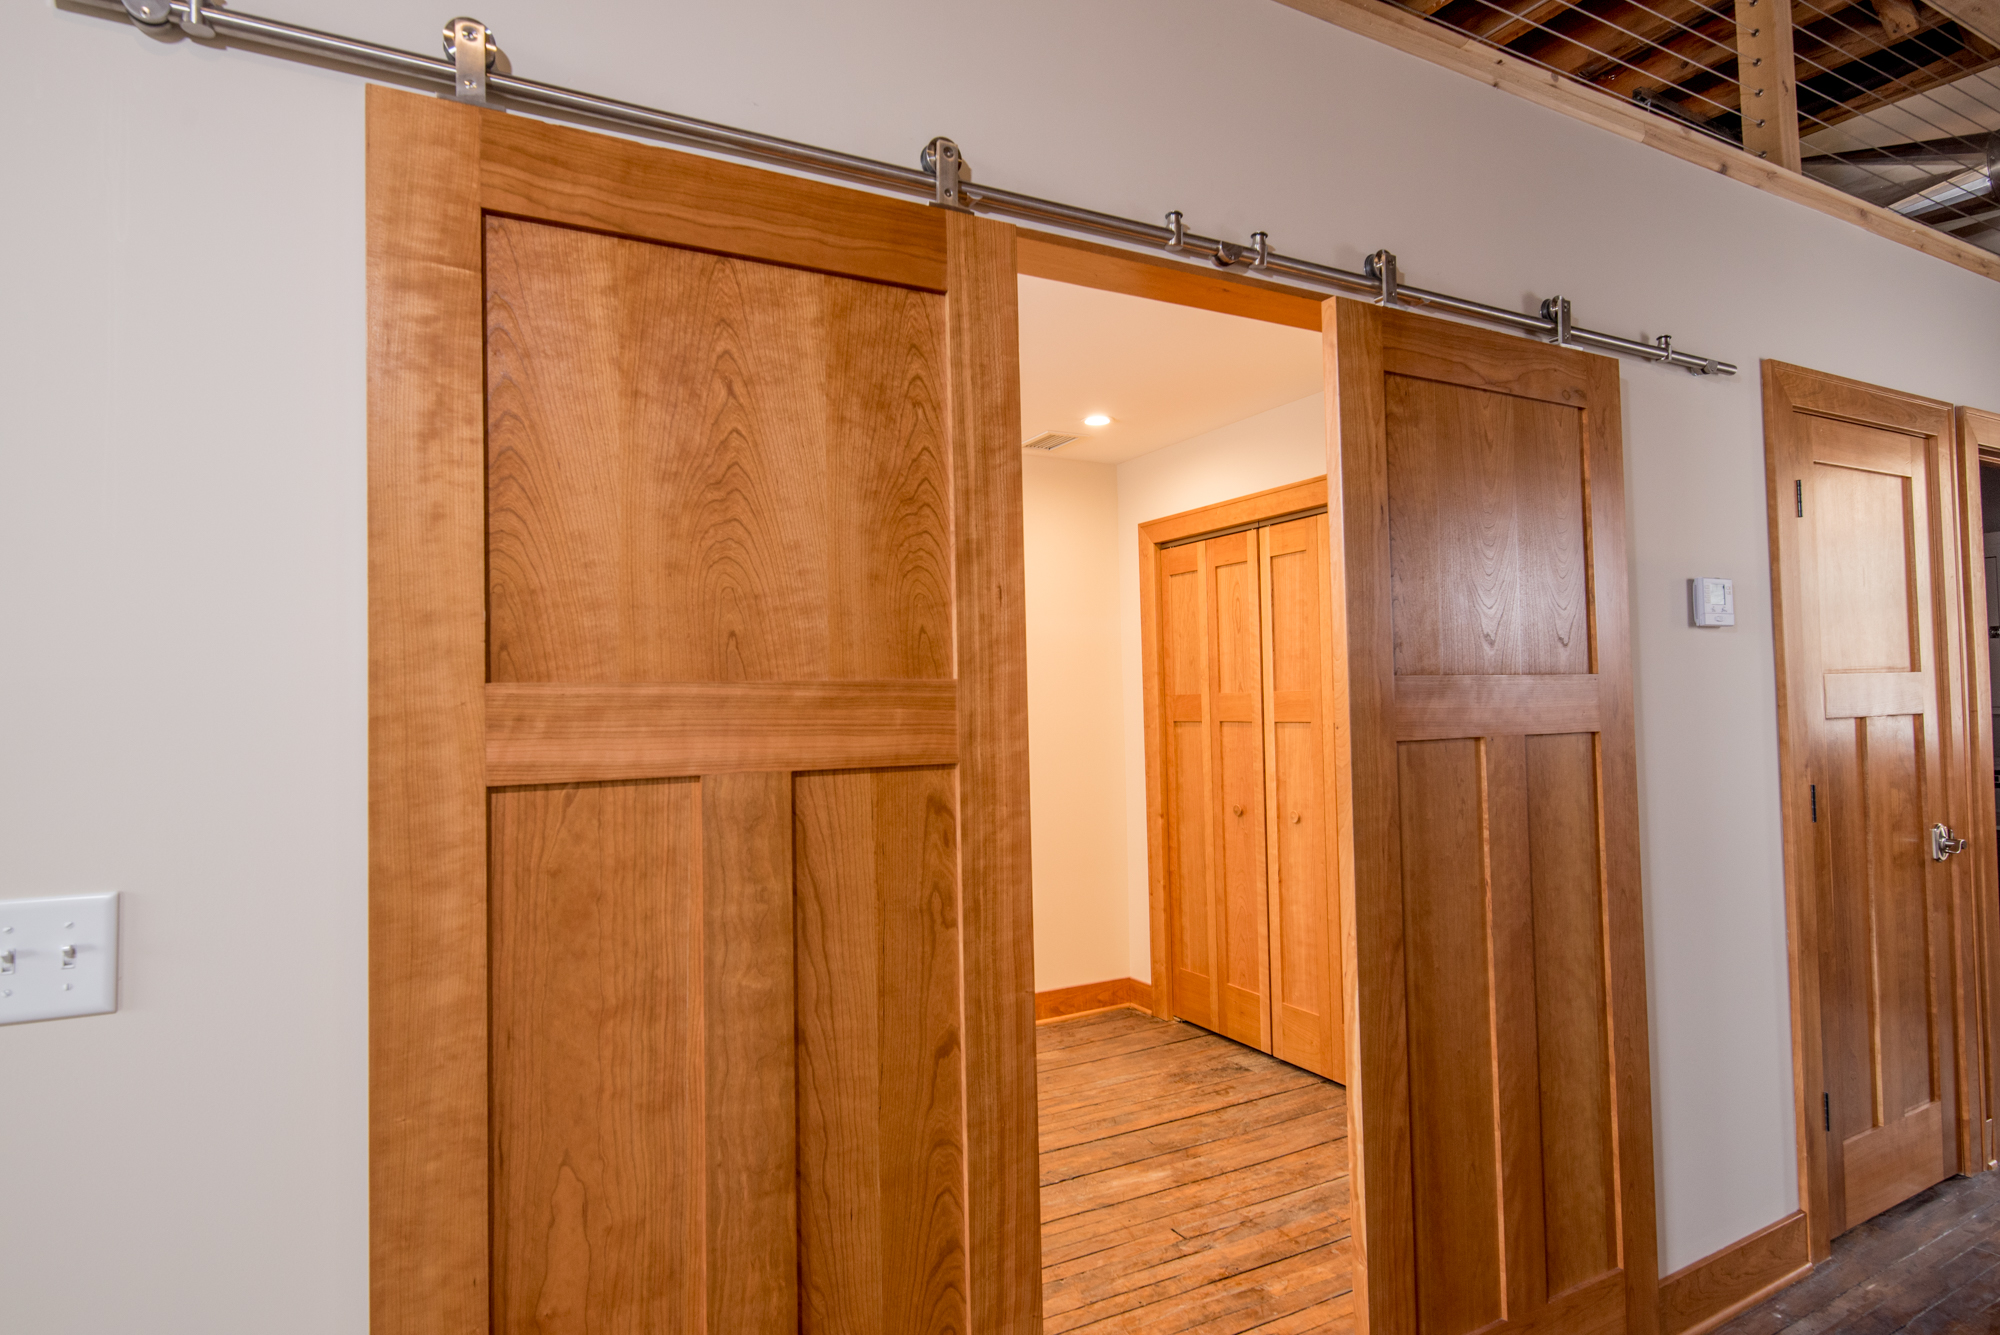 Barn doors offer full privacy in some of the building's units